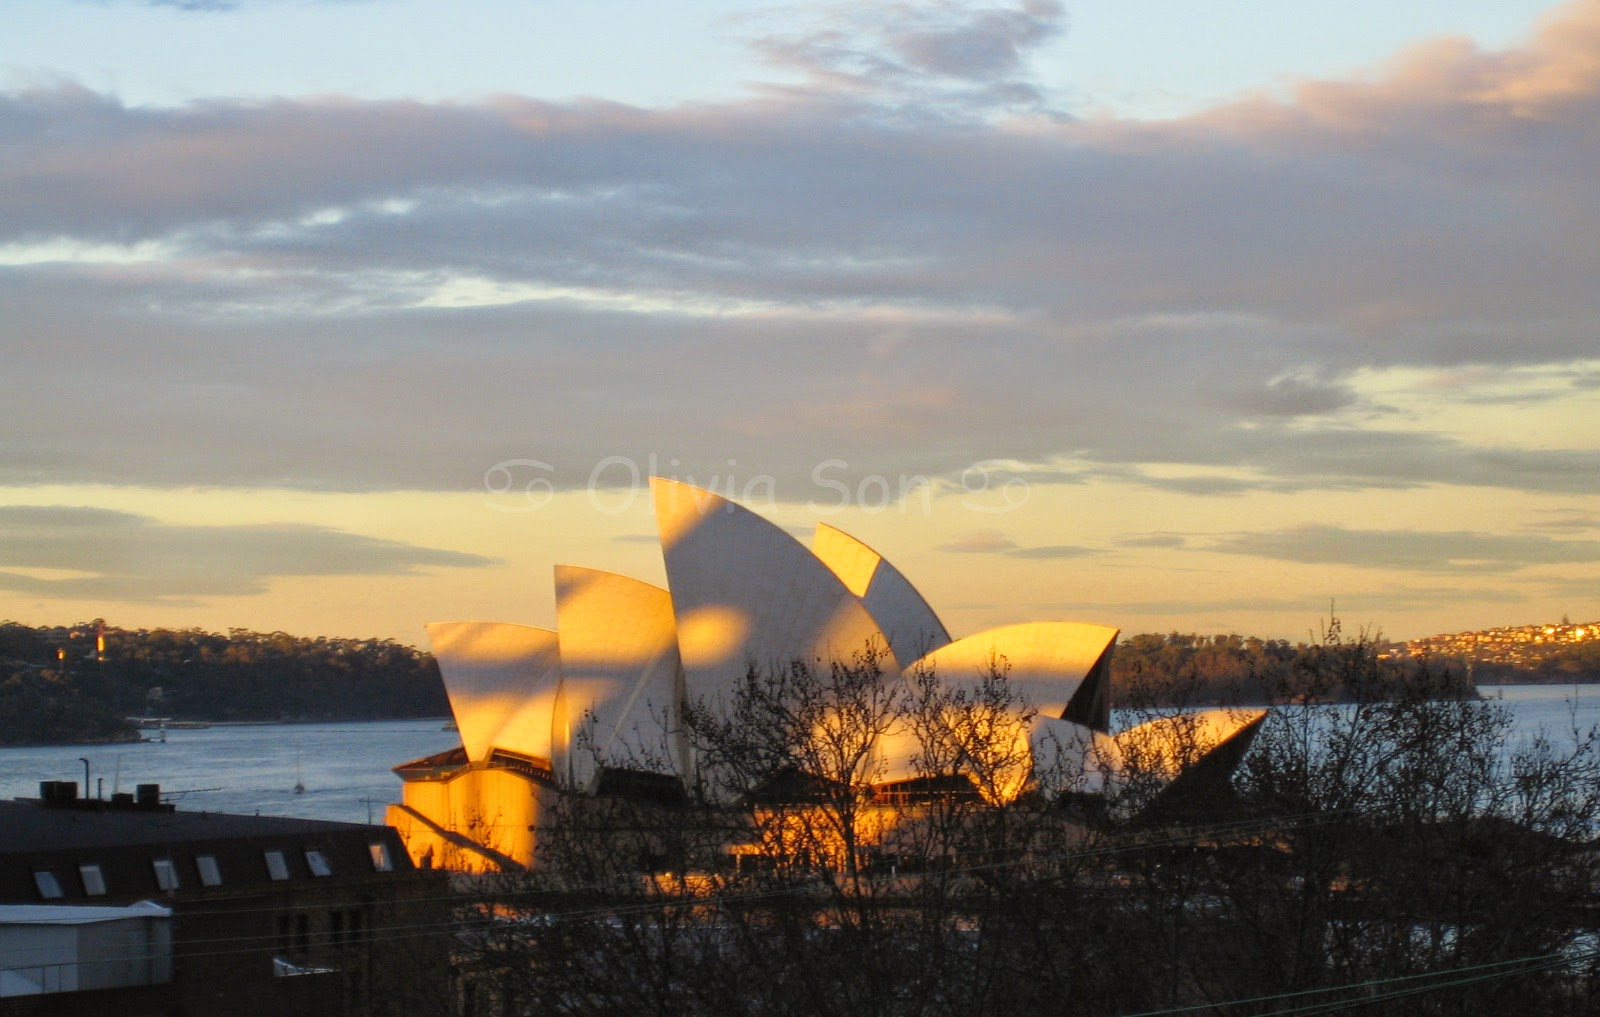 Sydney Opera House, The Rocks, Sydney, Australie